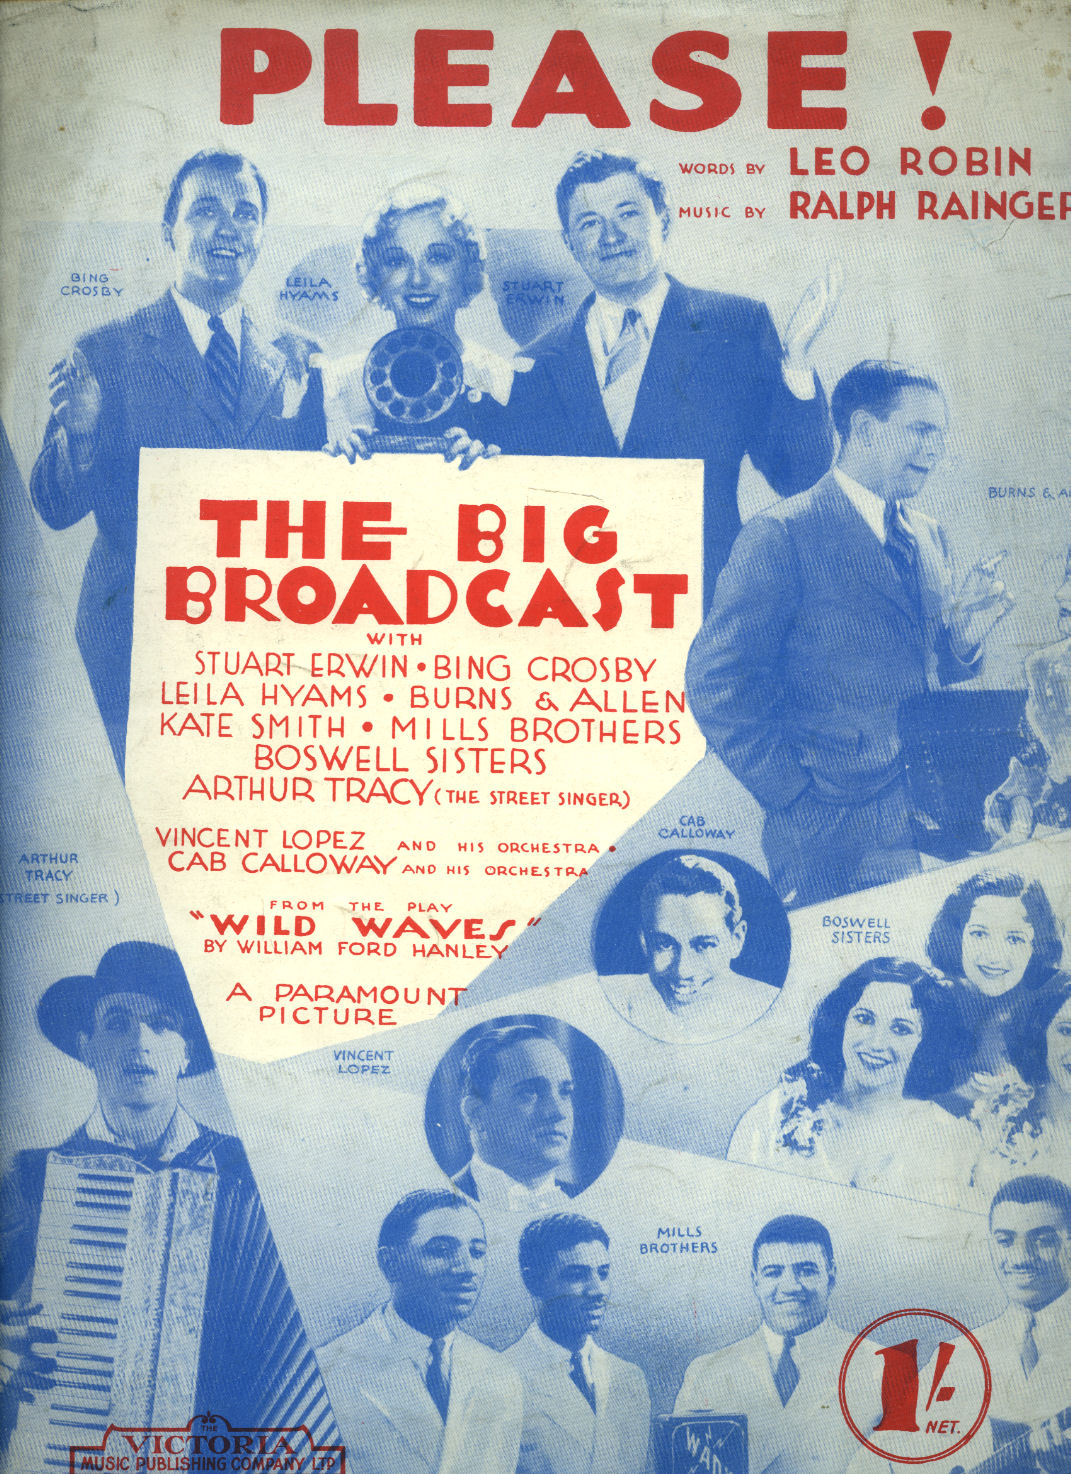 WORDS AND MUSIC BY LEO ROBIN AND RALPH RAINGER [WITH STUART ERWIN, BING CROSBY, LEILA HYAMS, BURNS & ALLEN, KATE SMITH, MILLS BROTHERS, BOSWELL SISTERS, ARTHUR TRACY (THE STREET SINGER), VINCENT LOPEZ AND HIS ORCHESTRA, CAB CALLOWAY AND HIS ORCHESTRA, FRO - Please, from The Big Broadcast [Vintage Piano Sheet Music] With Stuart Erwin, Bing Crosby, Leila Hyams, Burns & Allen, Kate Smith, Mills Brothers, Boswell Sisters, Arthur Tracy (The Street Singer), Vincent Lopez and His Orchestra, Cab Calloway and His Orchestra, From the Play